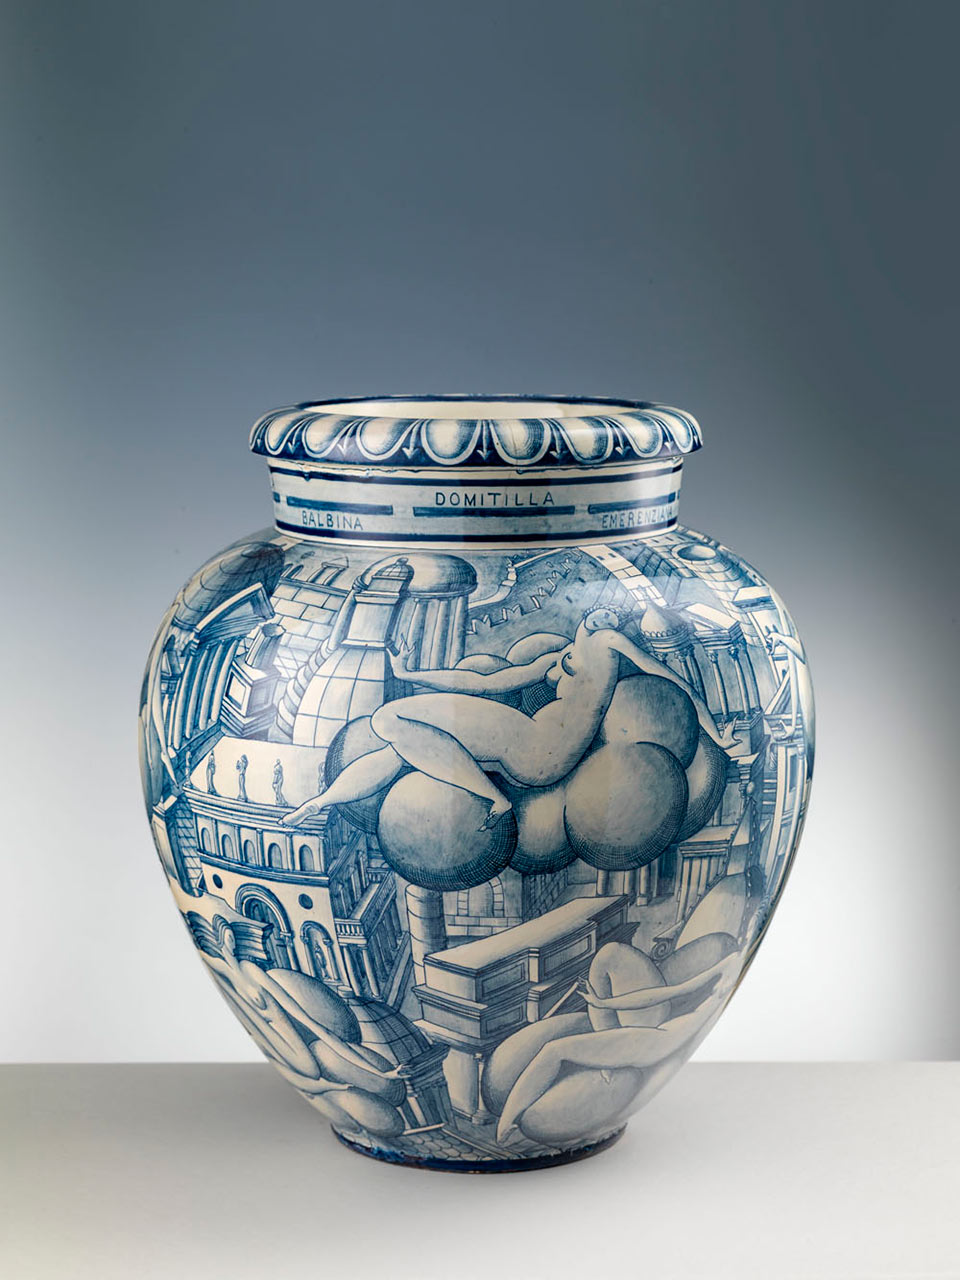 Donne su Nubi, large vase - 1923 (concept), 1924-1925 (creation), majolica painted in blue